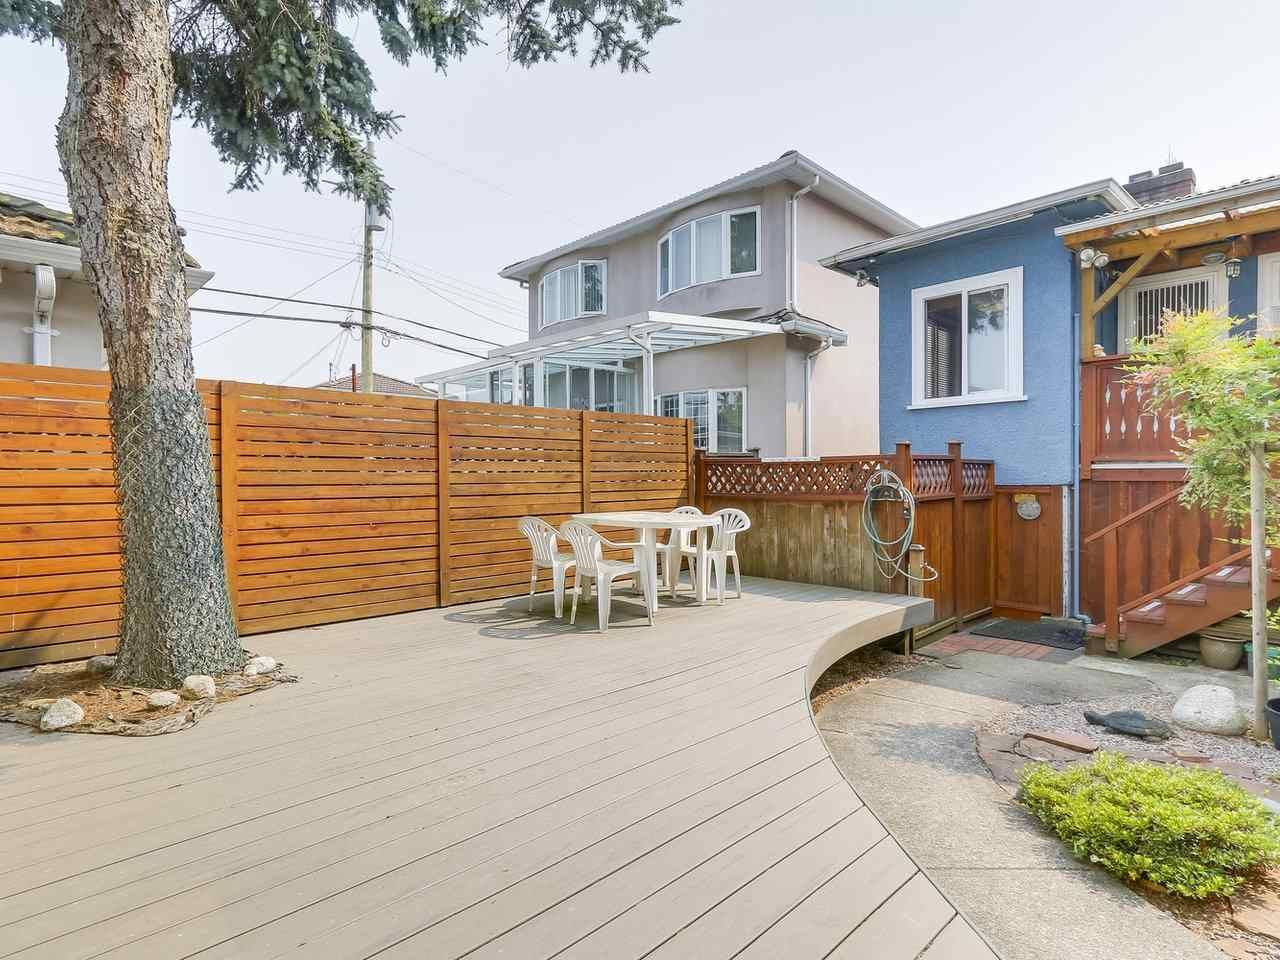 Photo 15: Photos: 165 E 55TH AVENUE in Vancouver: South Vancouver House for sale (Vancouver East)  : MLS®# R2297472